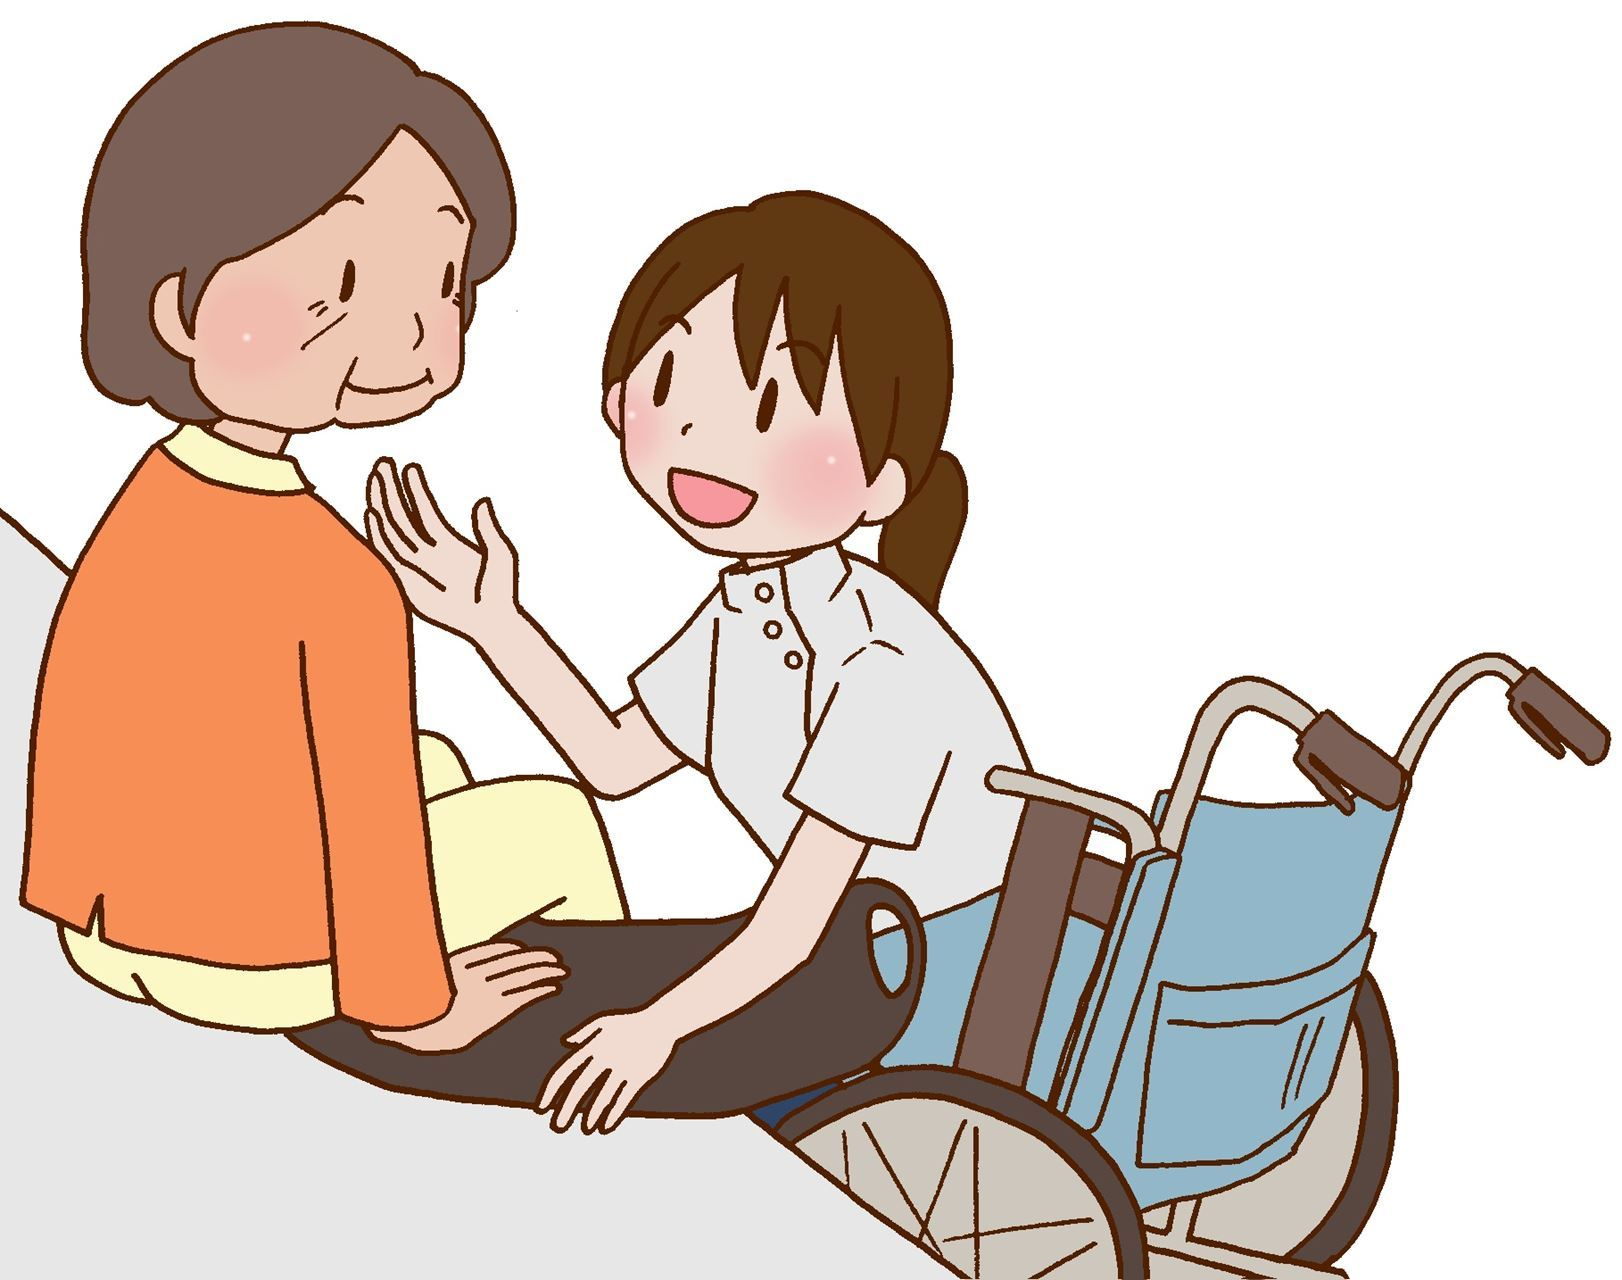 two cartoon women are shown, one sits on the edge of her bed in an orange sweater and yellow pants while the other kneels in front of her with a grey smock. The one kneeling is a caregiver waiting to help as the other women transfers from the bed into a wheelchair.